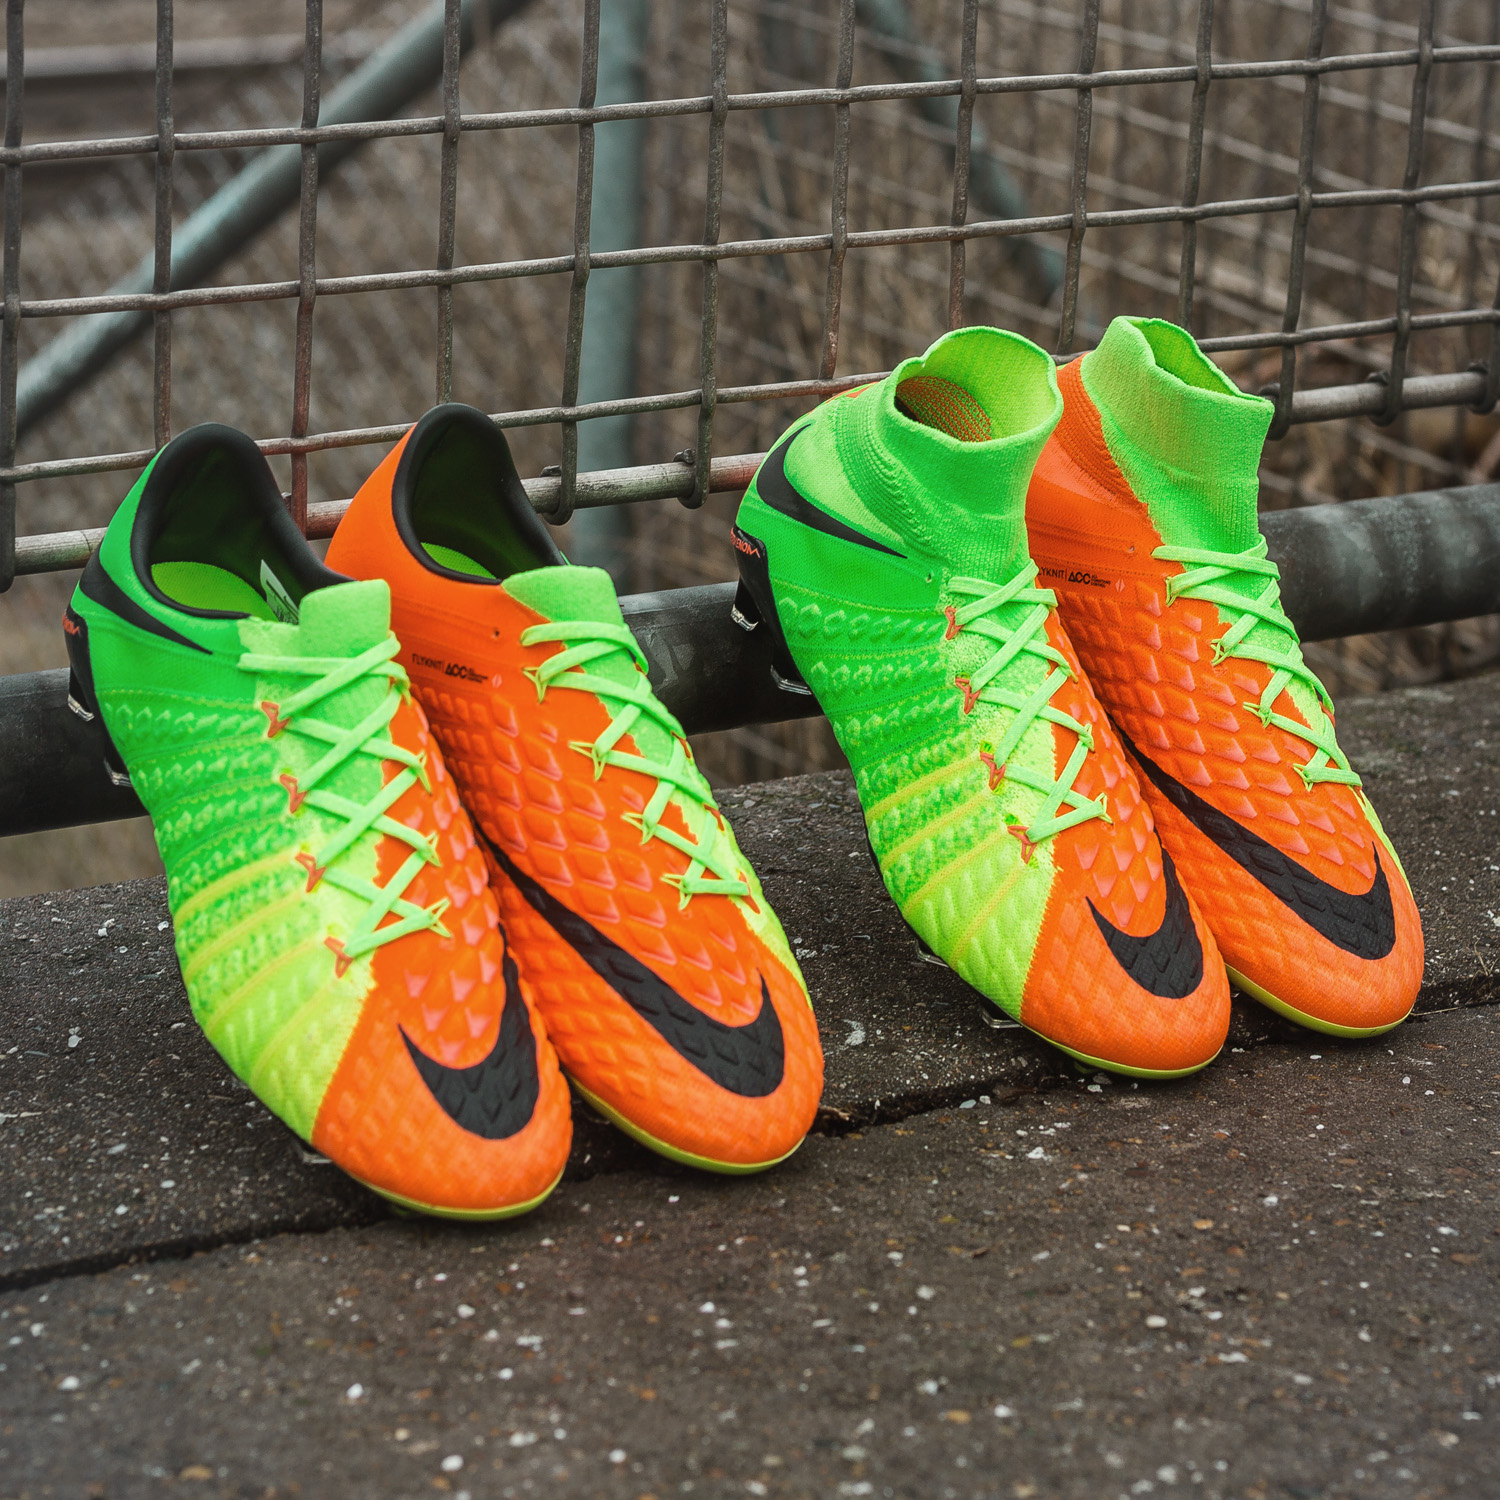 new arrival f6b12 e4a95 Nike Hypervenom 3 Phantom DF vs. Phantom 3 | What's the ...